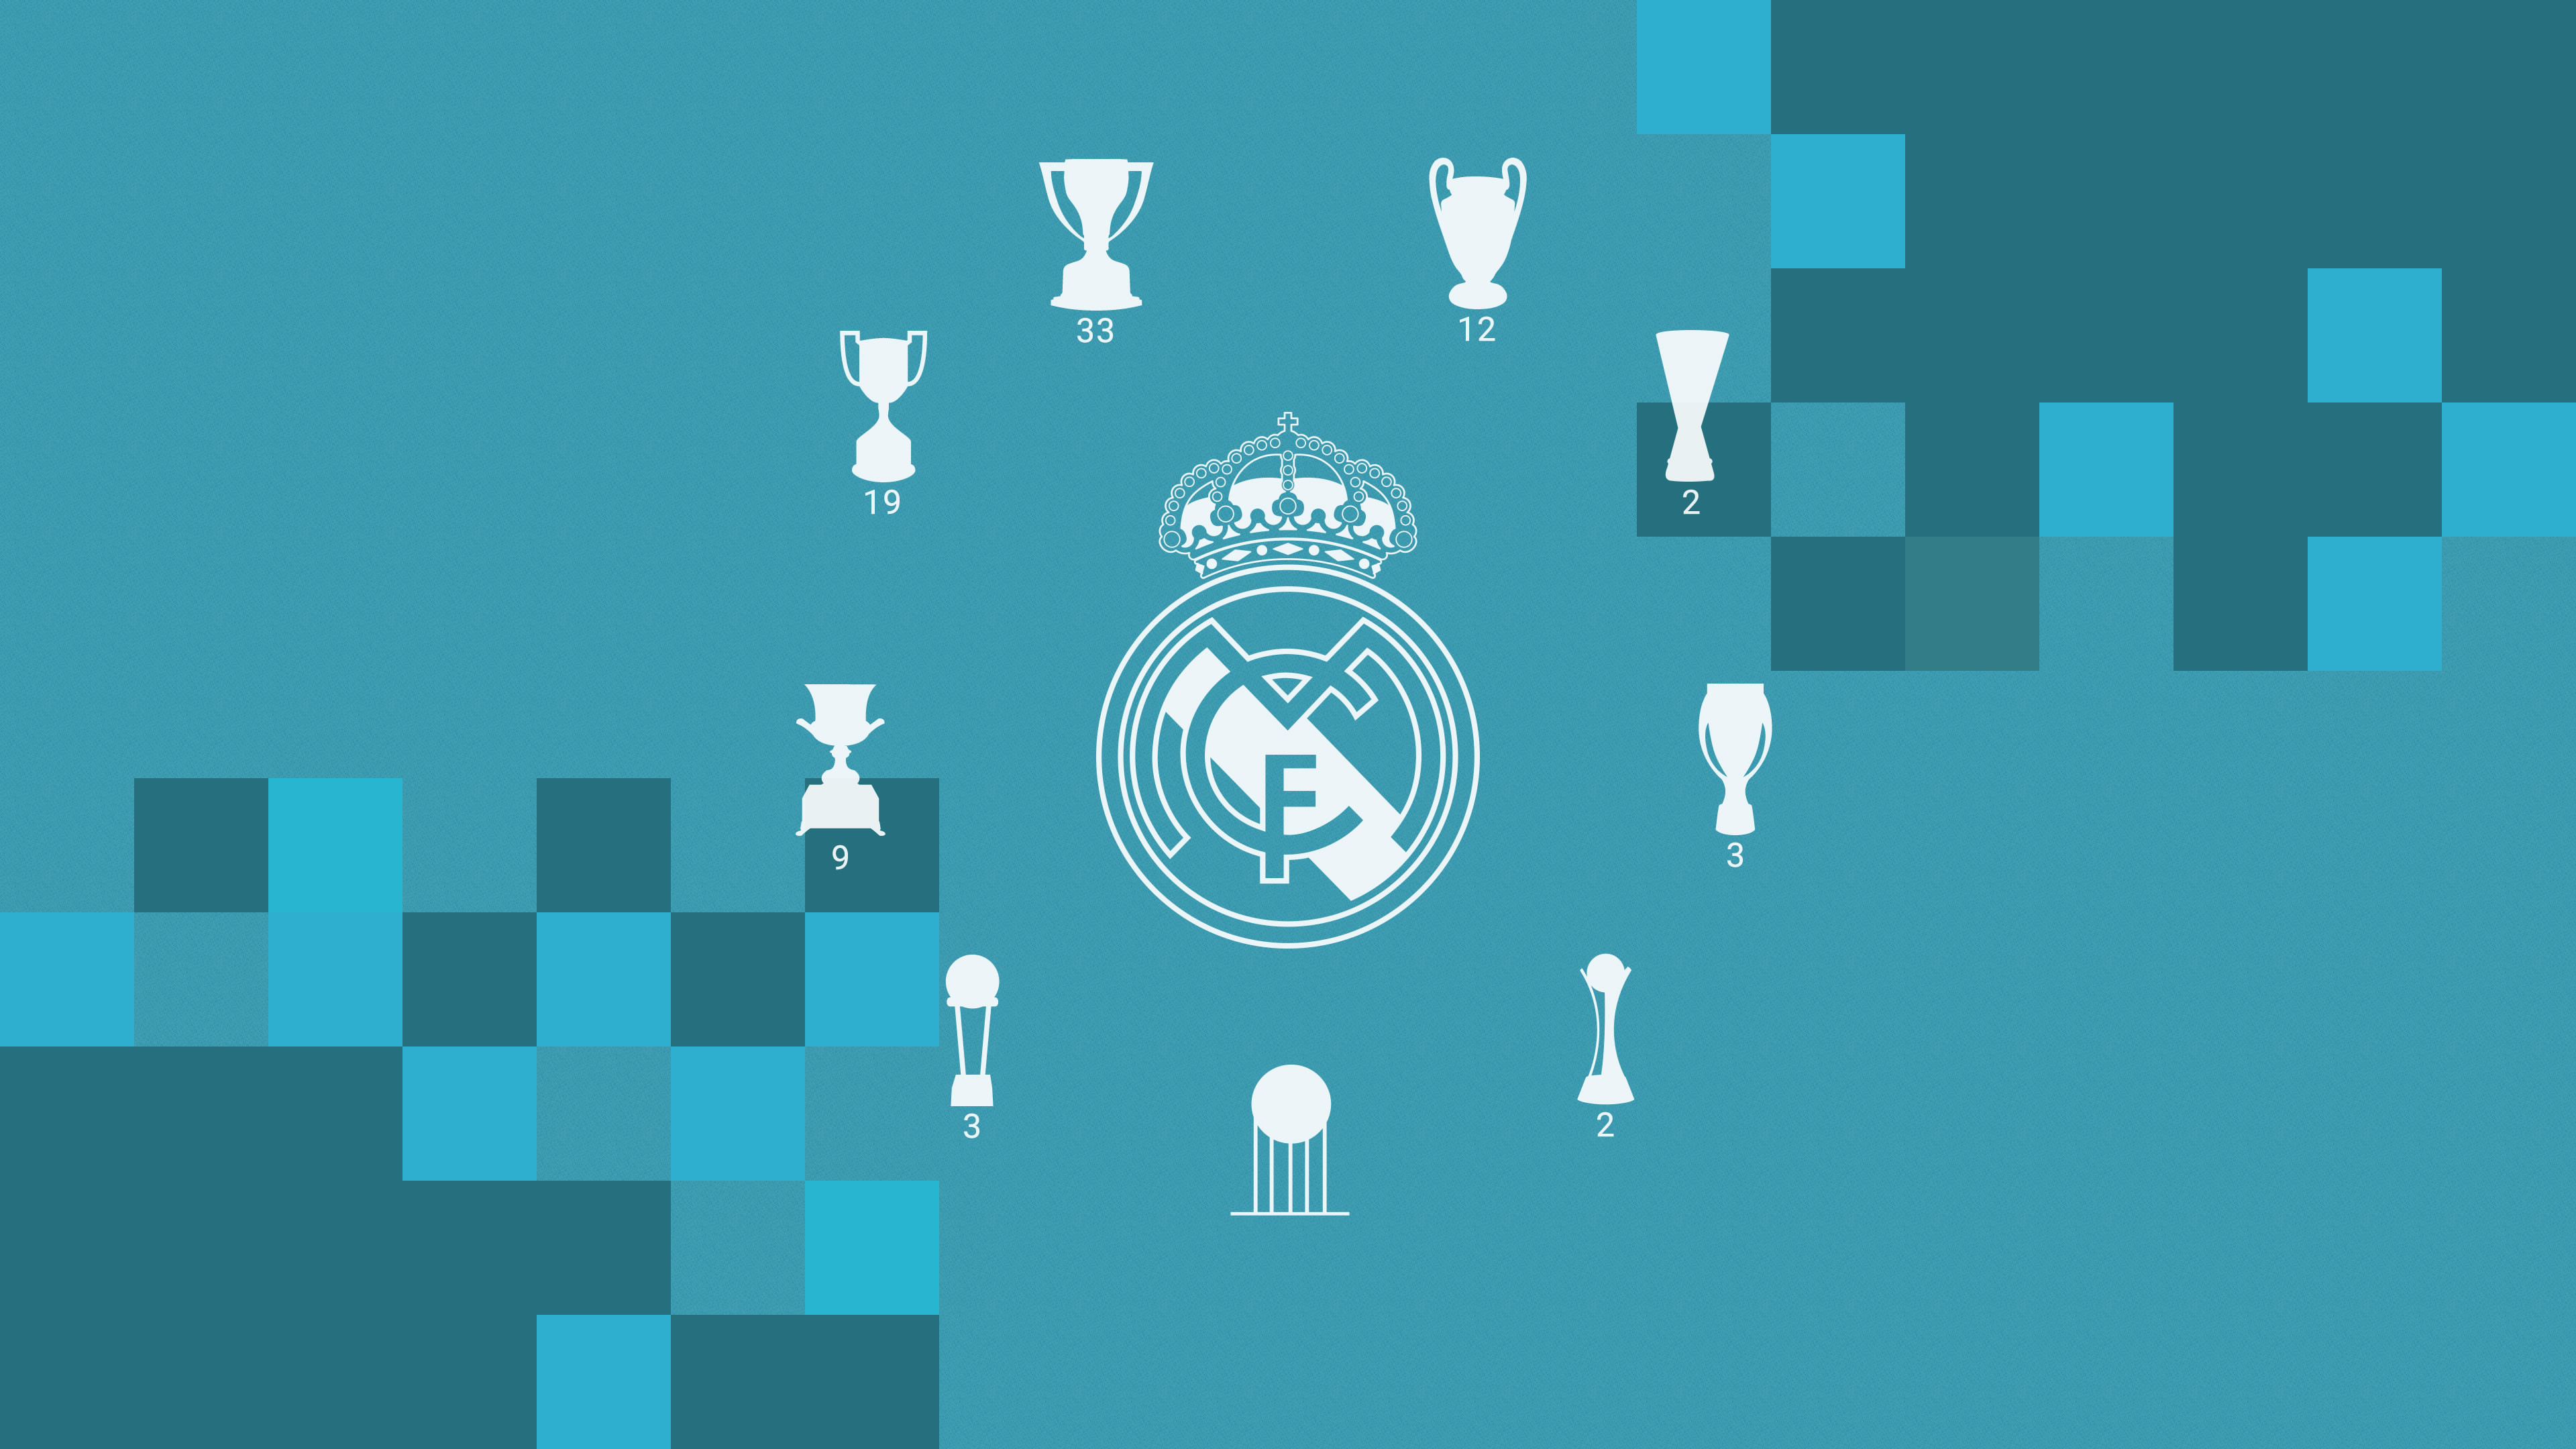 Real Madrid Wallpaper 2018 72 images 3840x2160